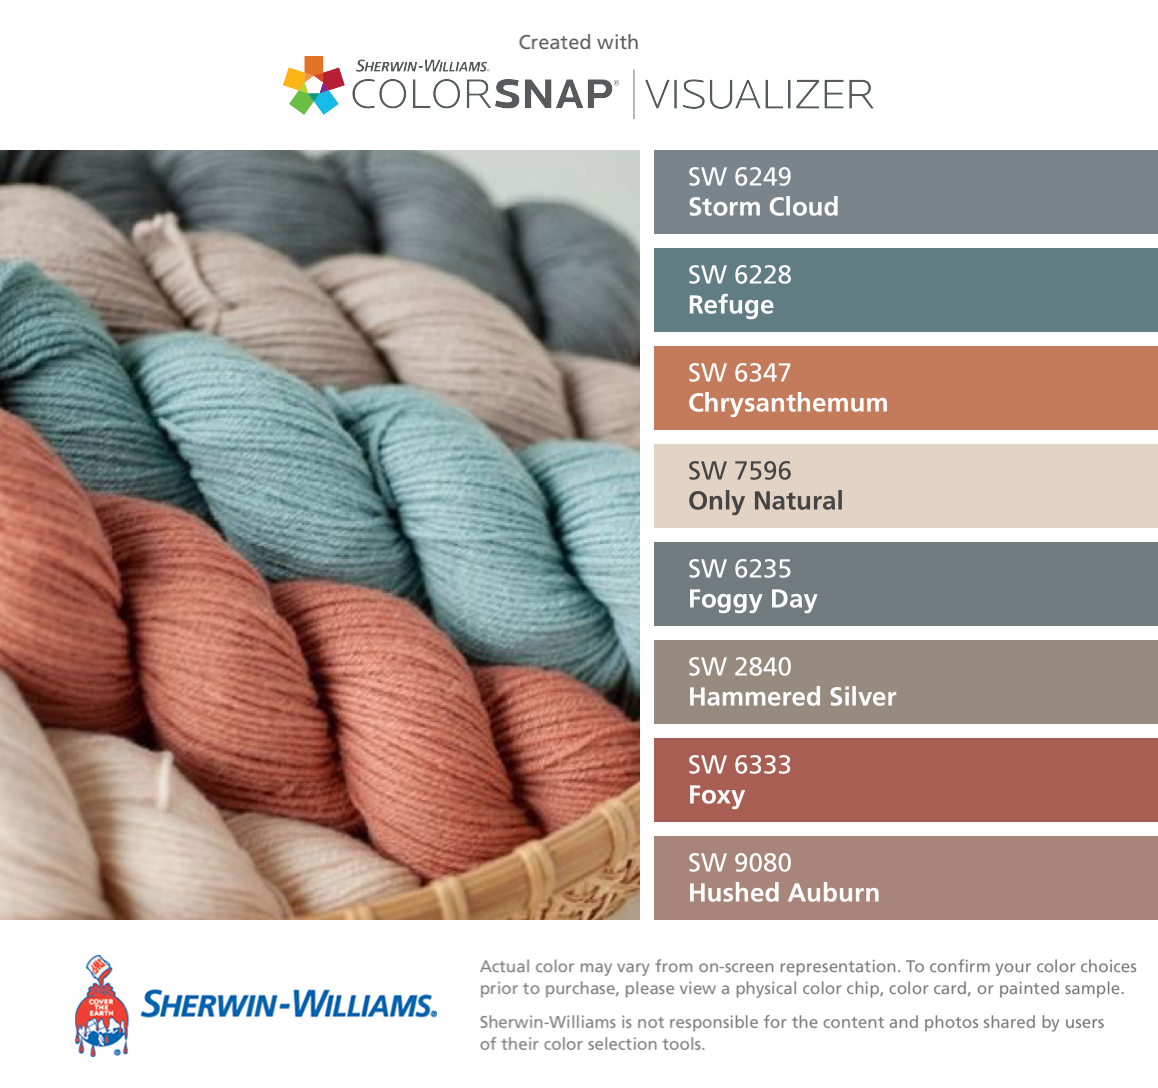 Sherwin williams paint colors sherwin williams 6249 storm cloud - I Found These Colors With Colorsnap Visualizer For Iphone By Sherwin Williams Storm